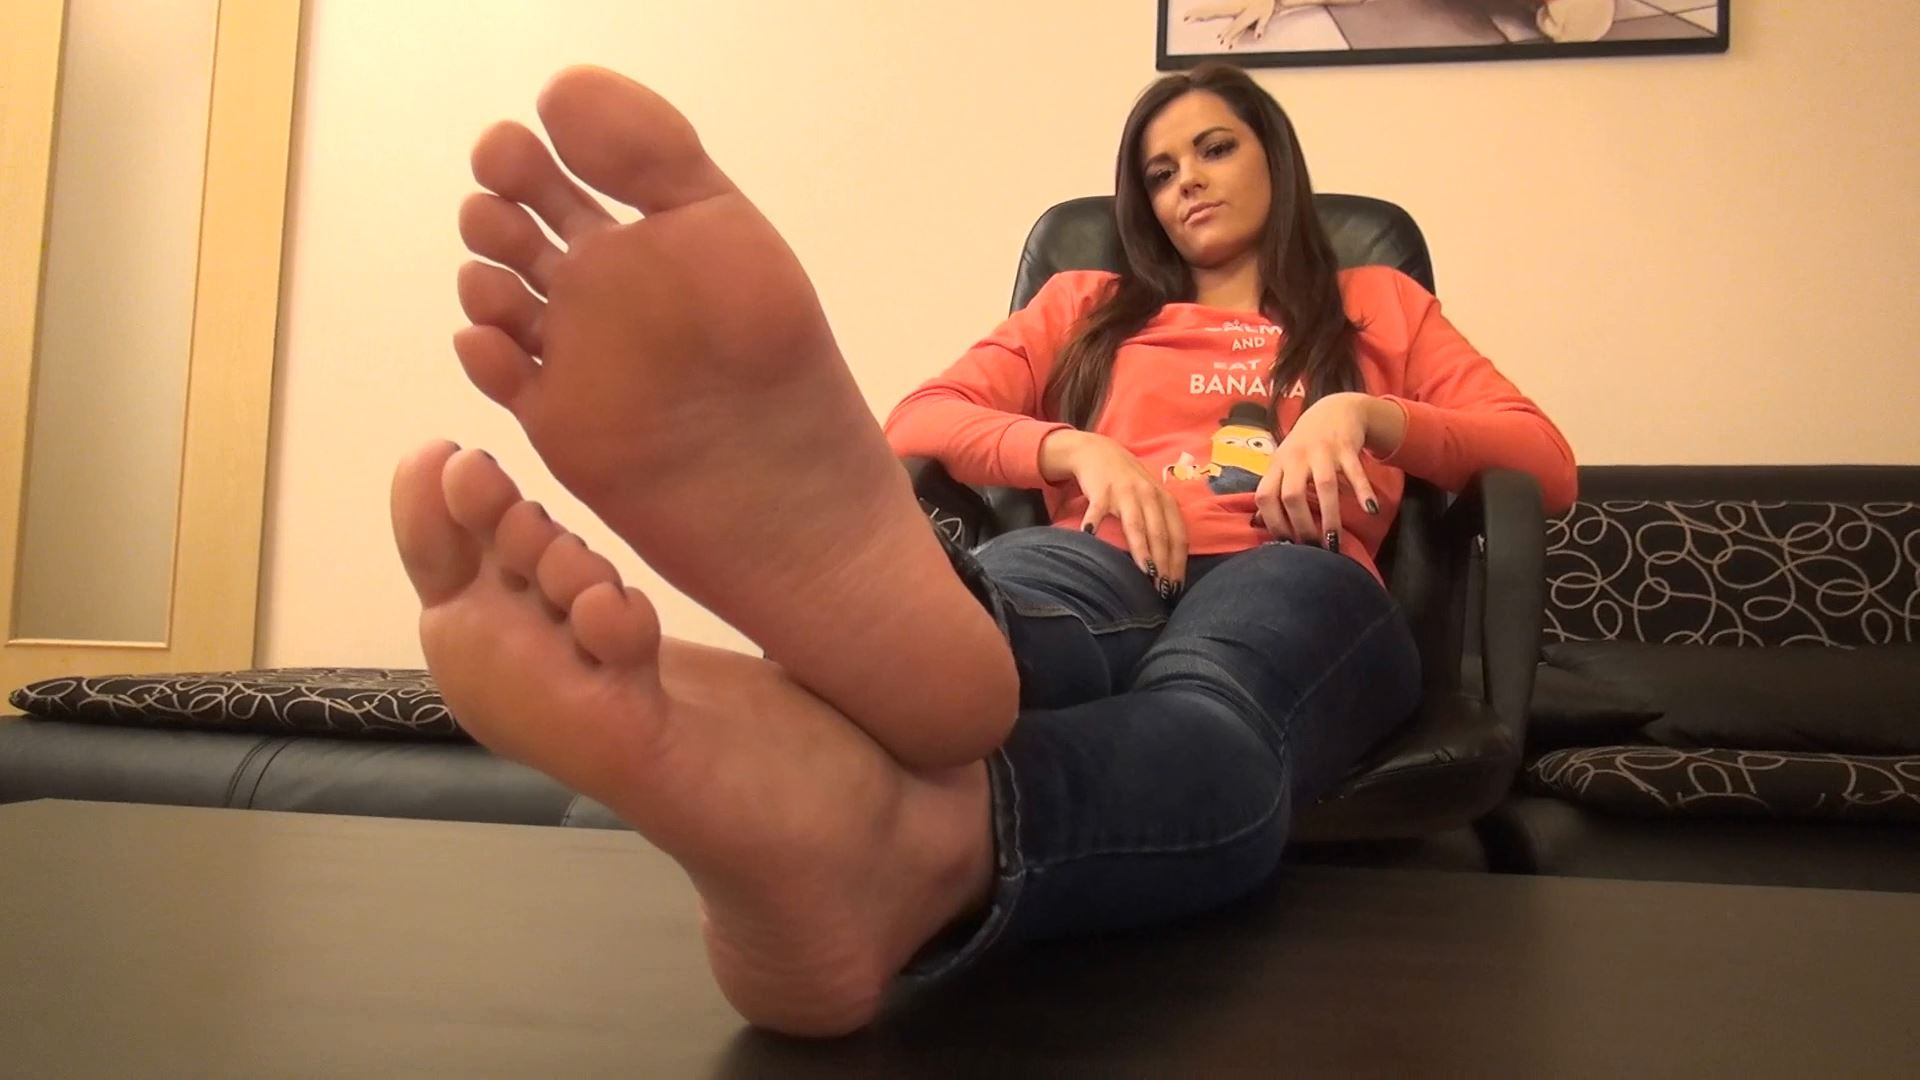 CAROLINA - MY SOLES IN YOUR FACE PART 3 - FOOTDOMINAS - FULL HD/1080p/MP4